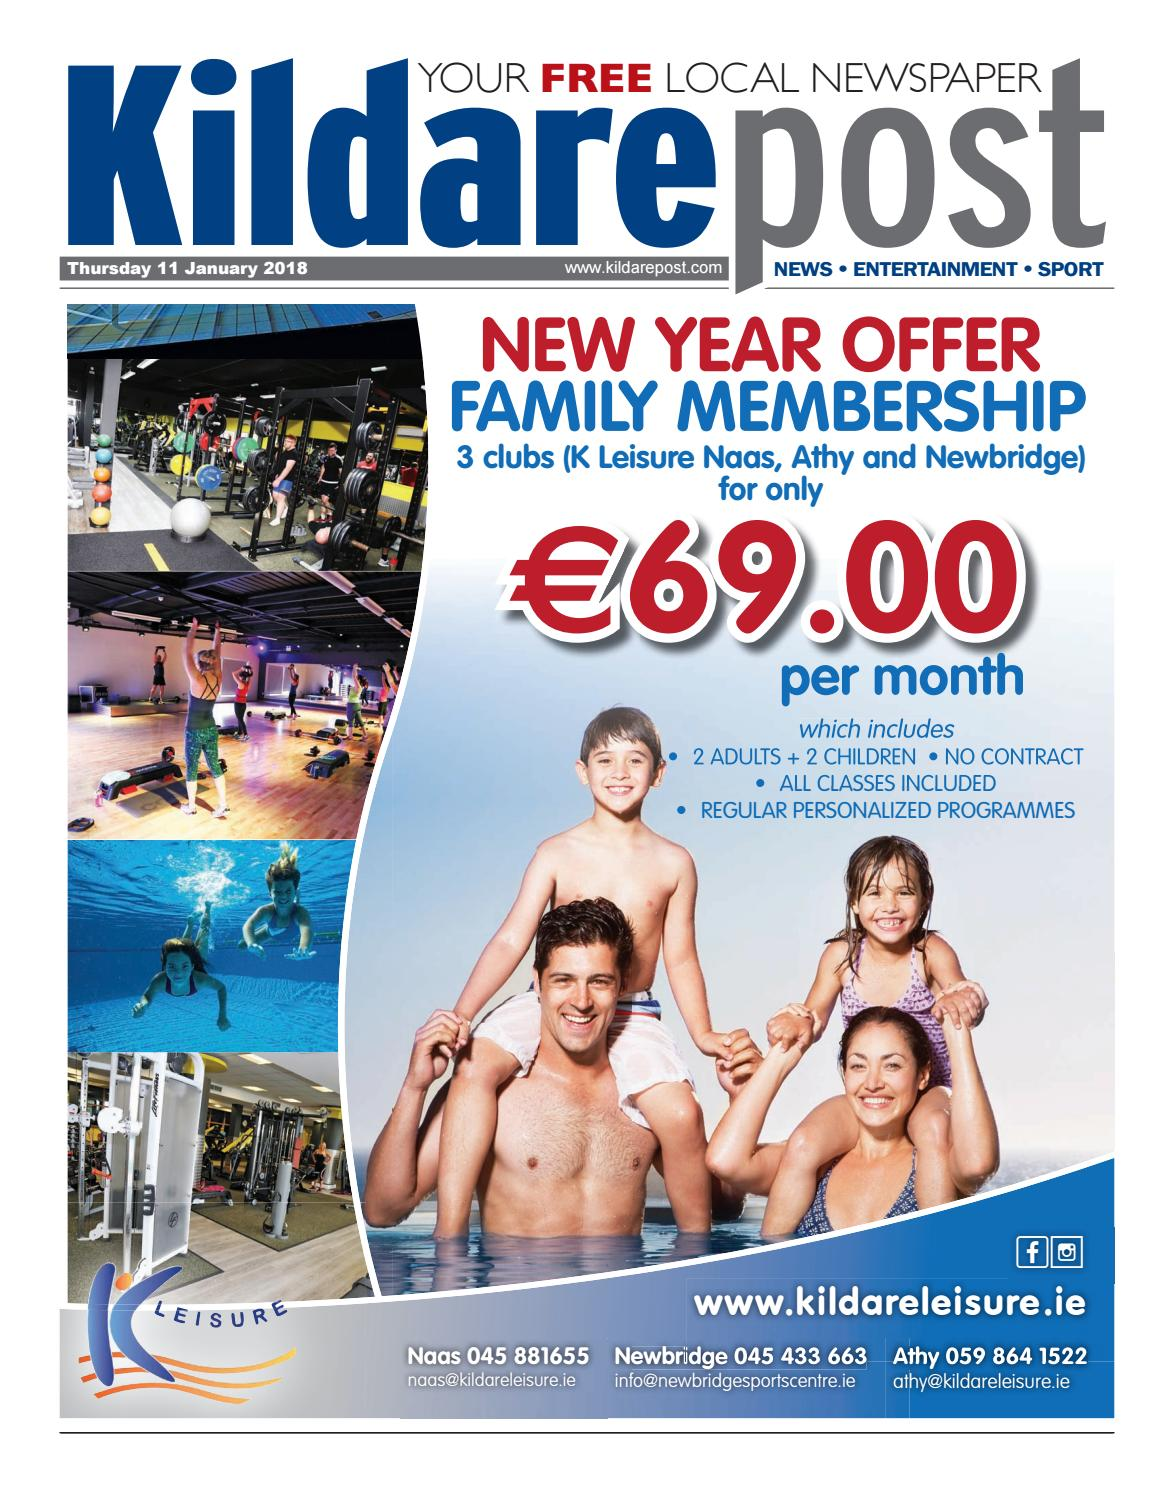 Kildare post 11 01 18 by River Media Newspapers - issuu 59b4b474b7d7e